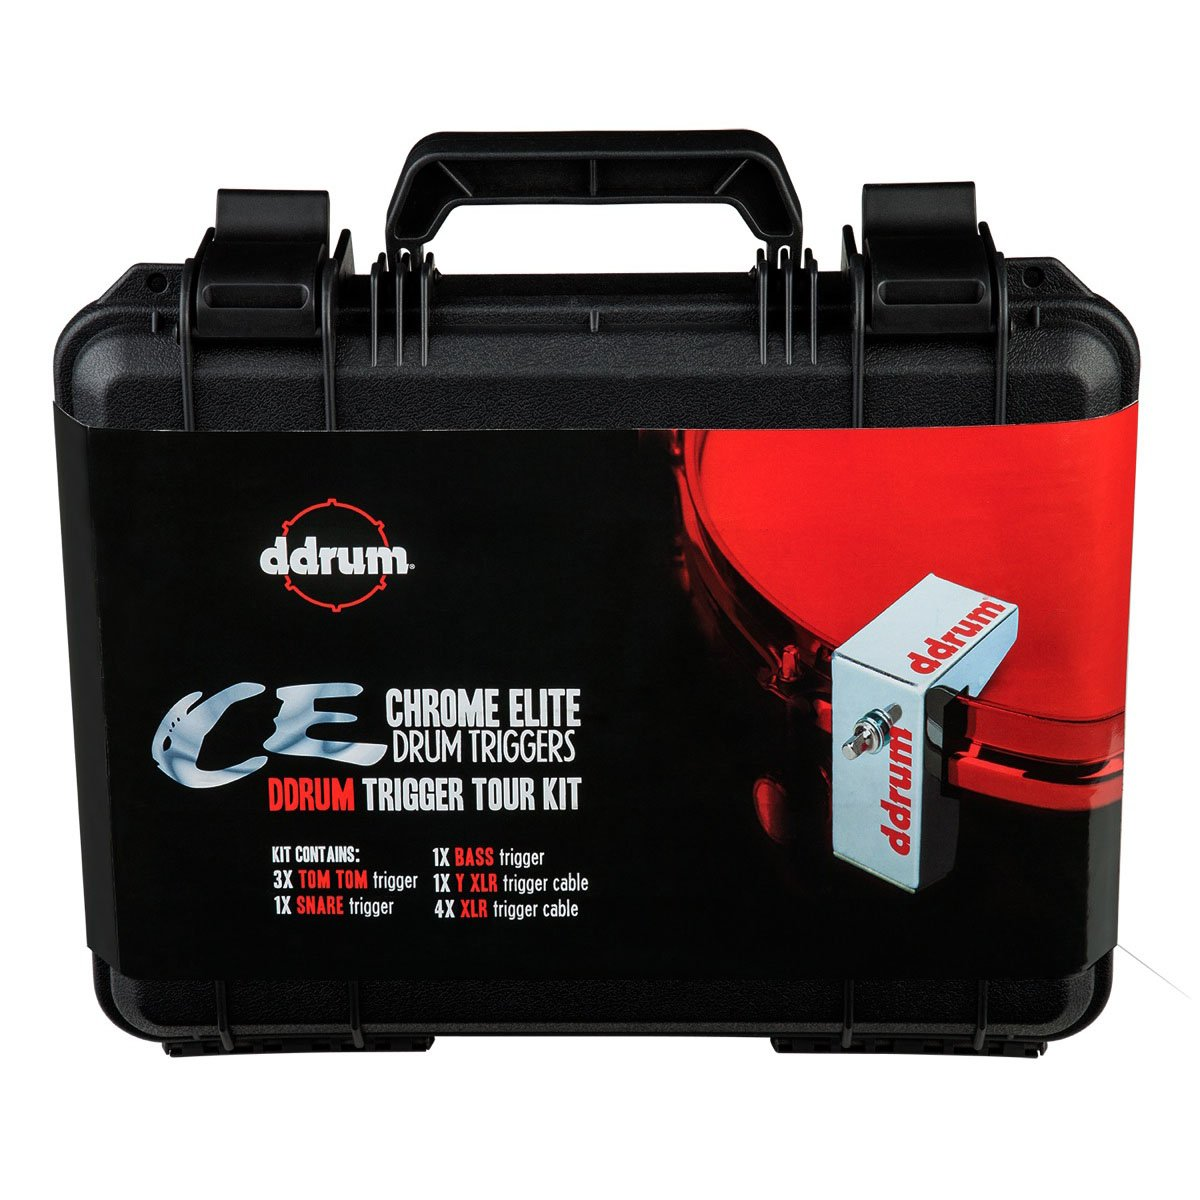 ddrum CETOURPK CE Trigger Pack with Case and Cables by Ddrum (Image #1)